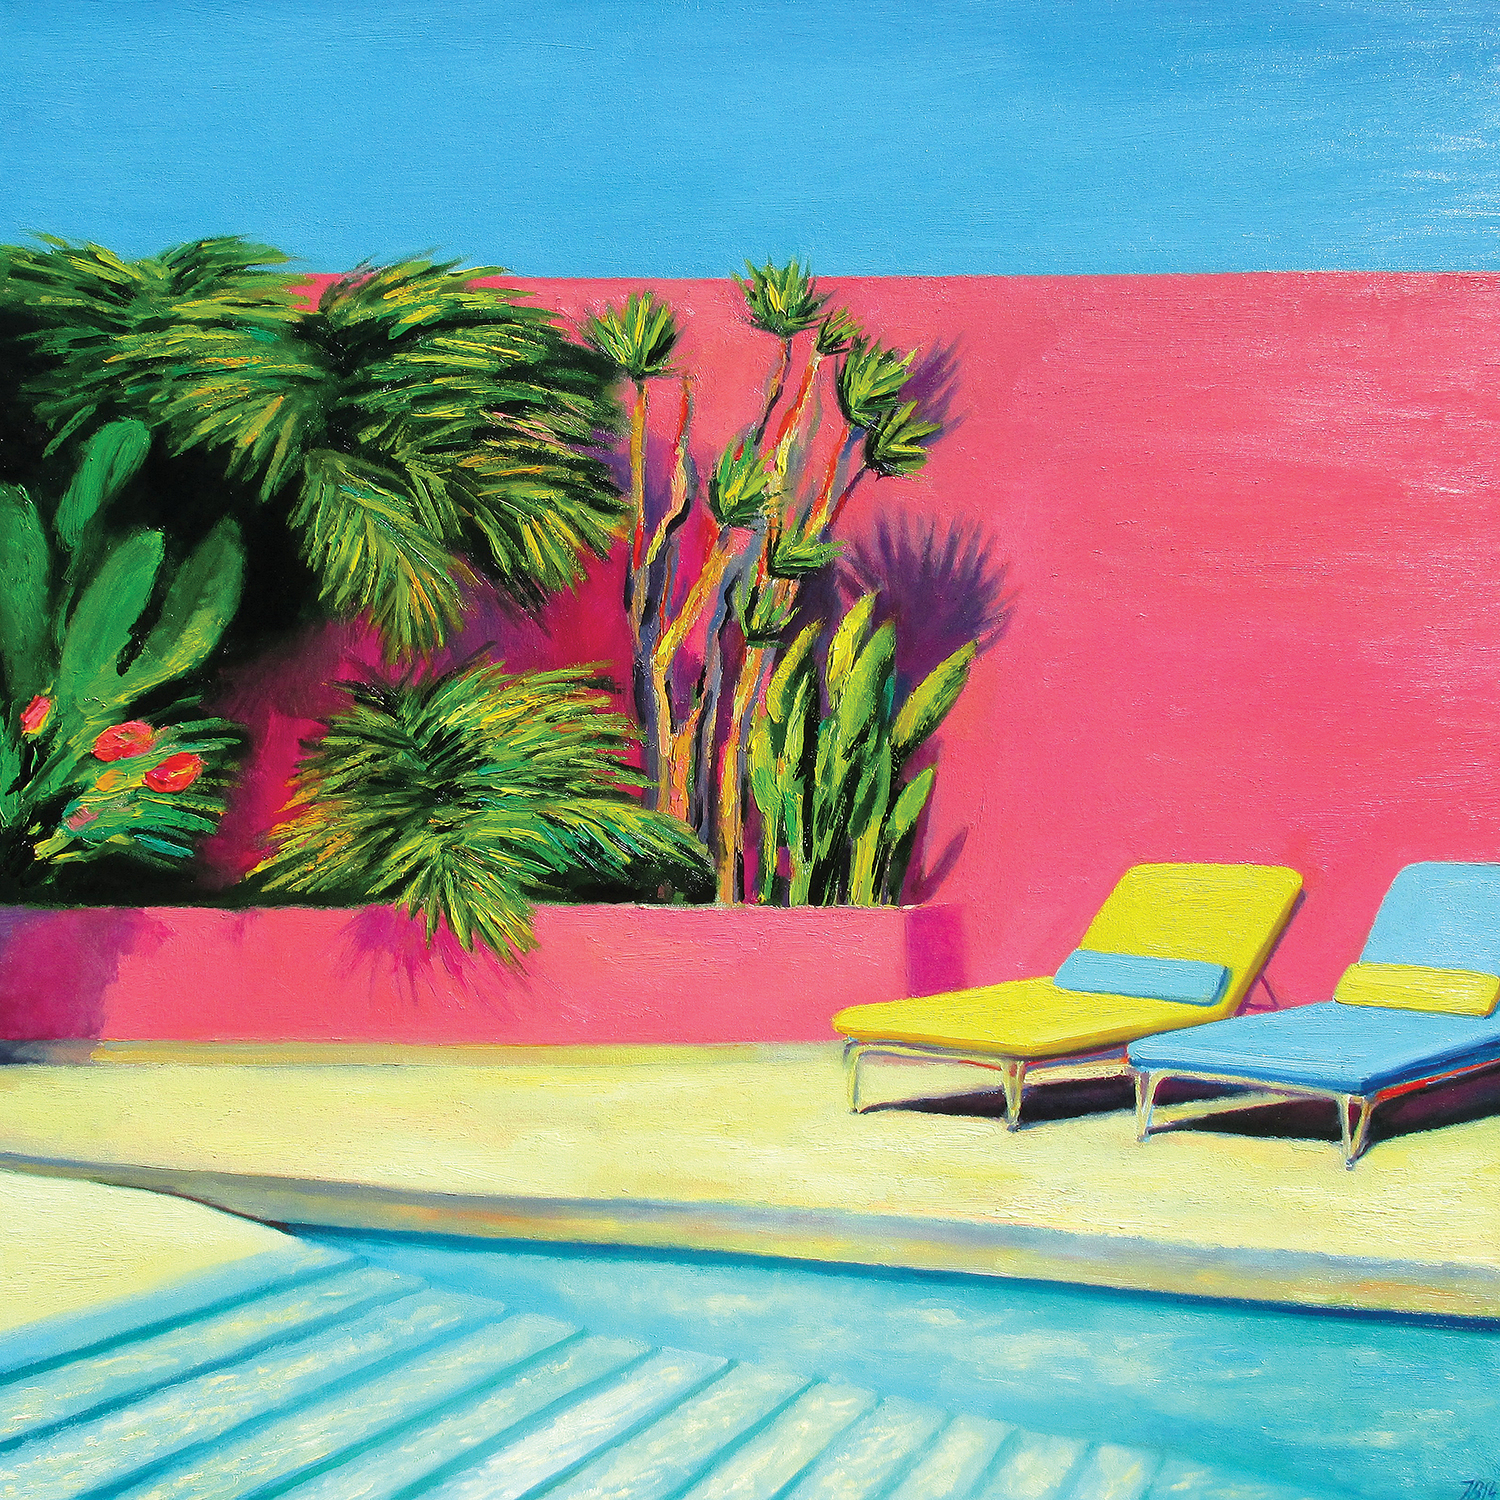 two lounge chairs against pink wall with green plant life and stairs into the pool